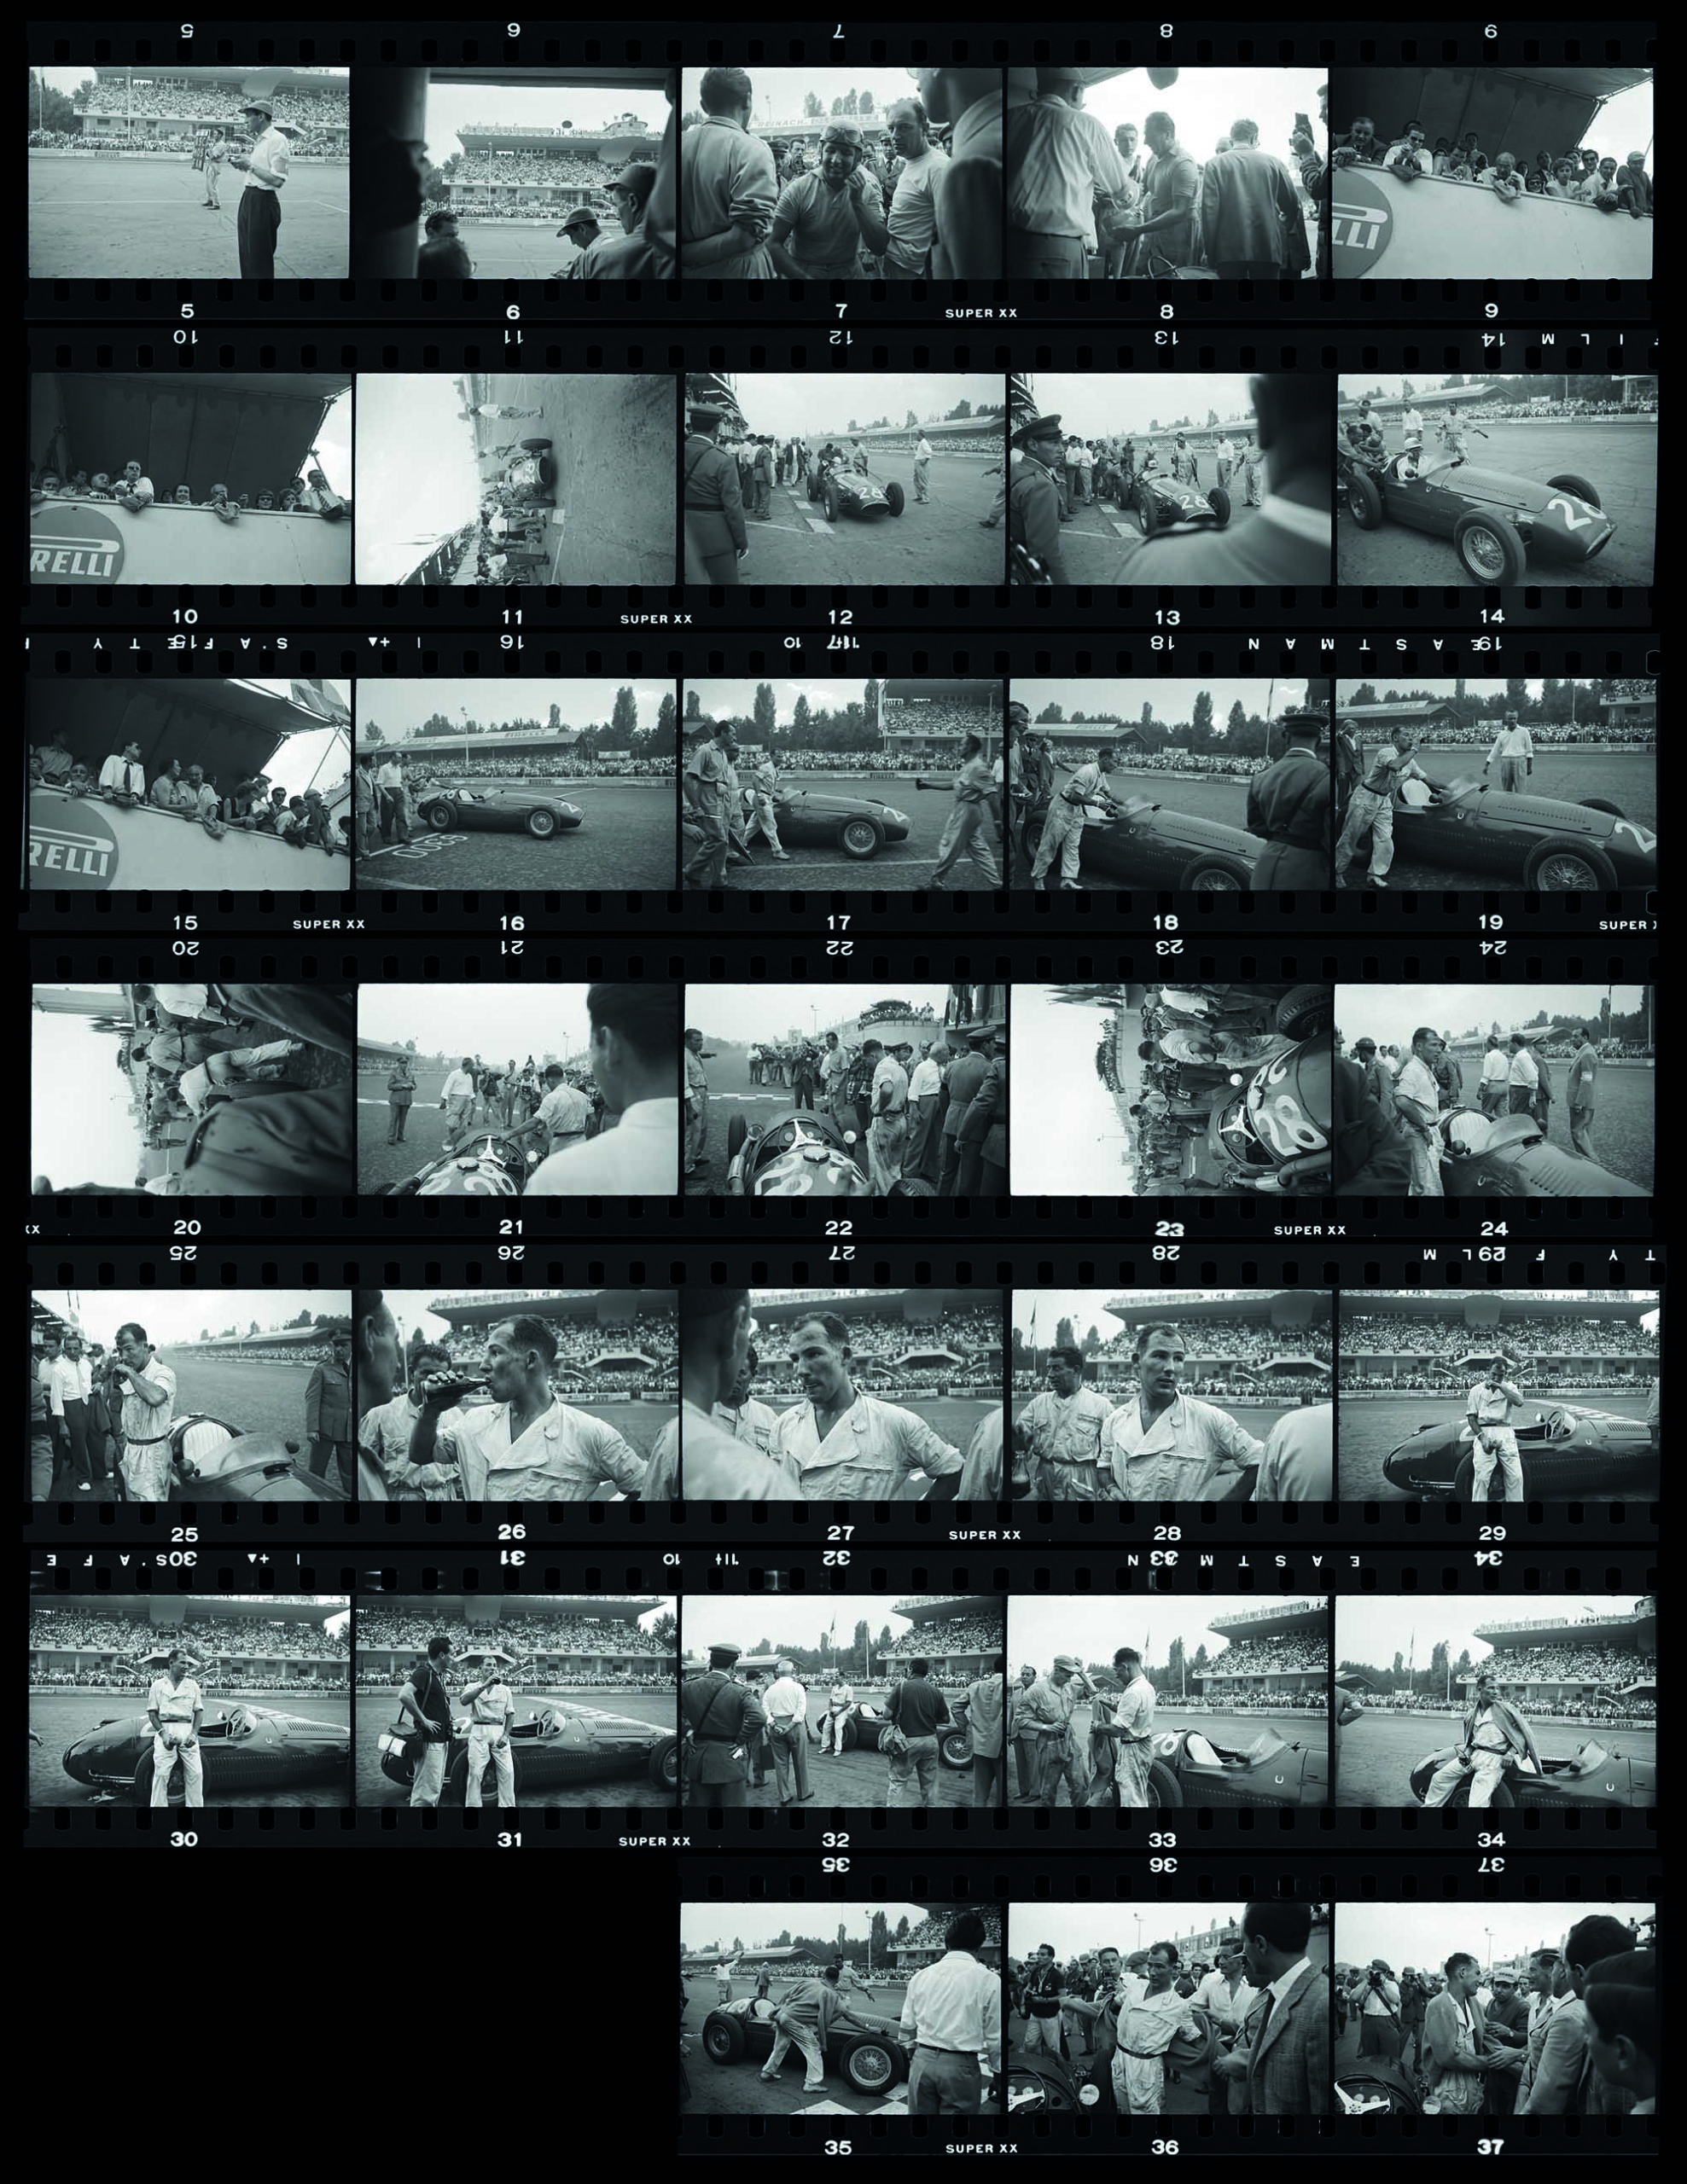 Frames-of-Stirling-Moss-during-the-1954-Italian-Grand-Prix-weekend at Monza